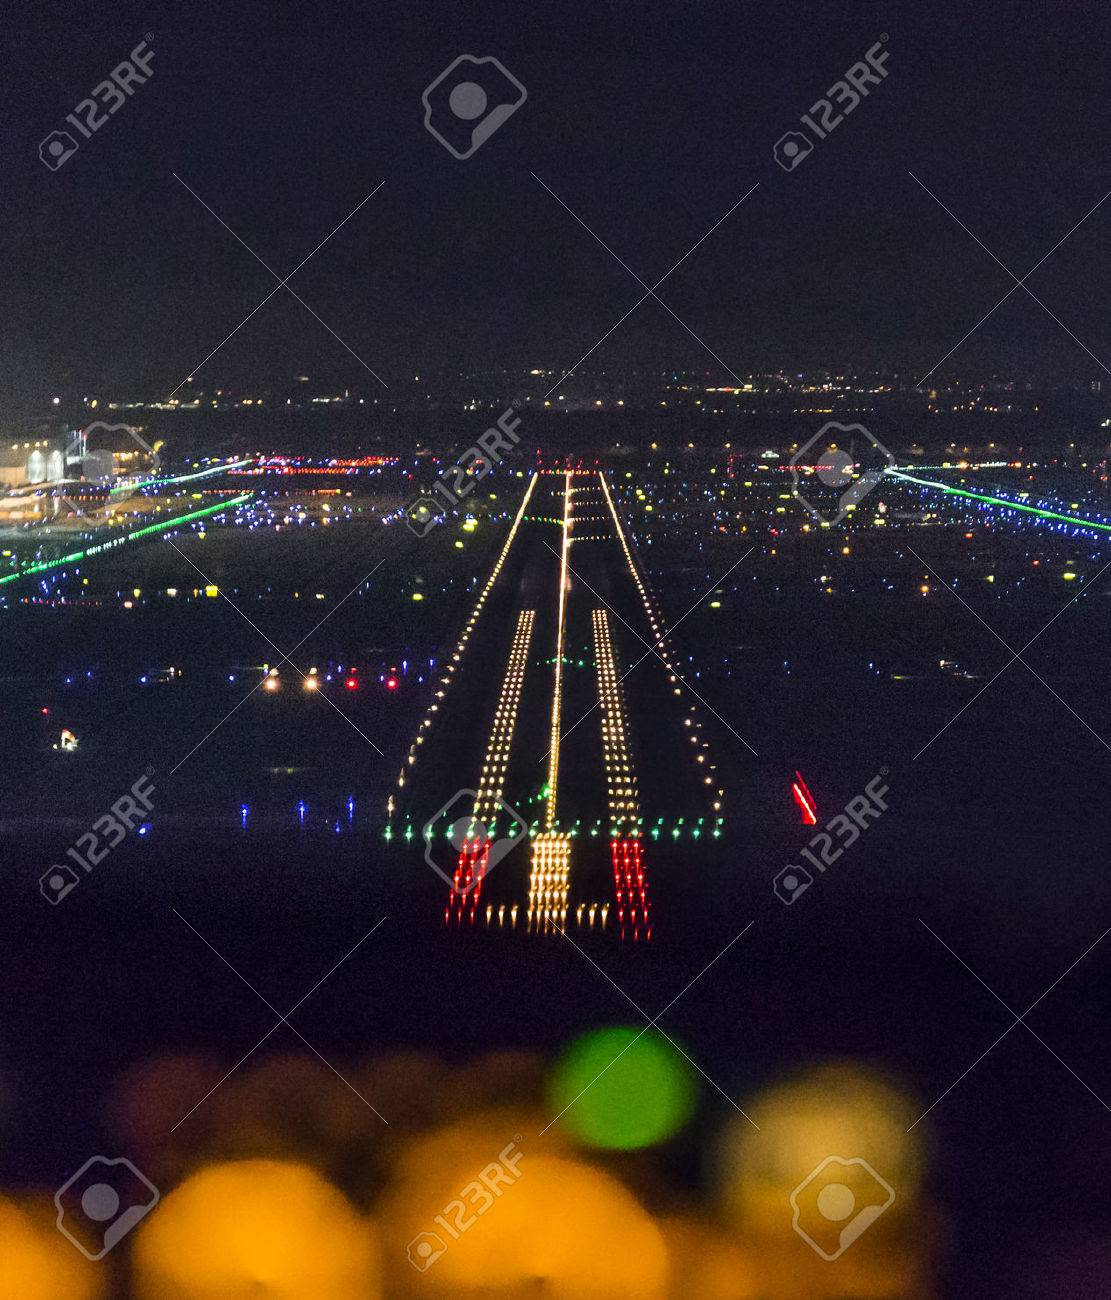 FRANKFURT, GERMANY - OCT 10, 2014: landing by night with a commercaial aircraft at the airport of Frankfurt, Germany. - 32402016